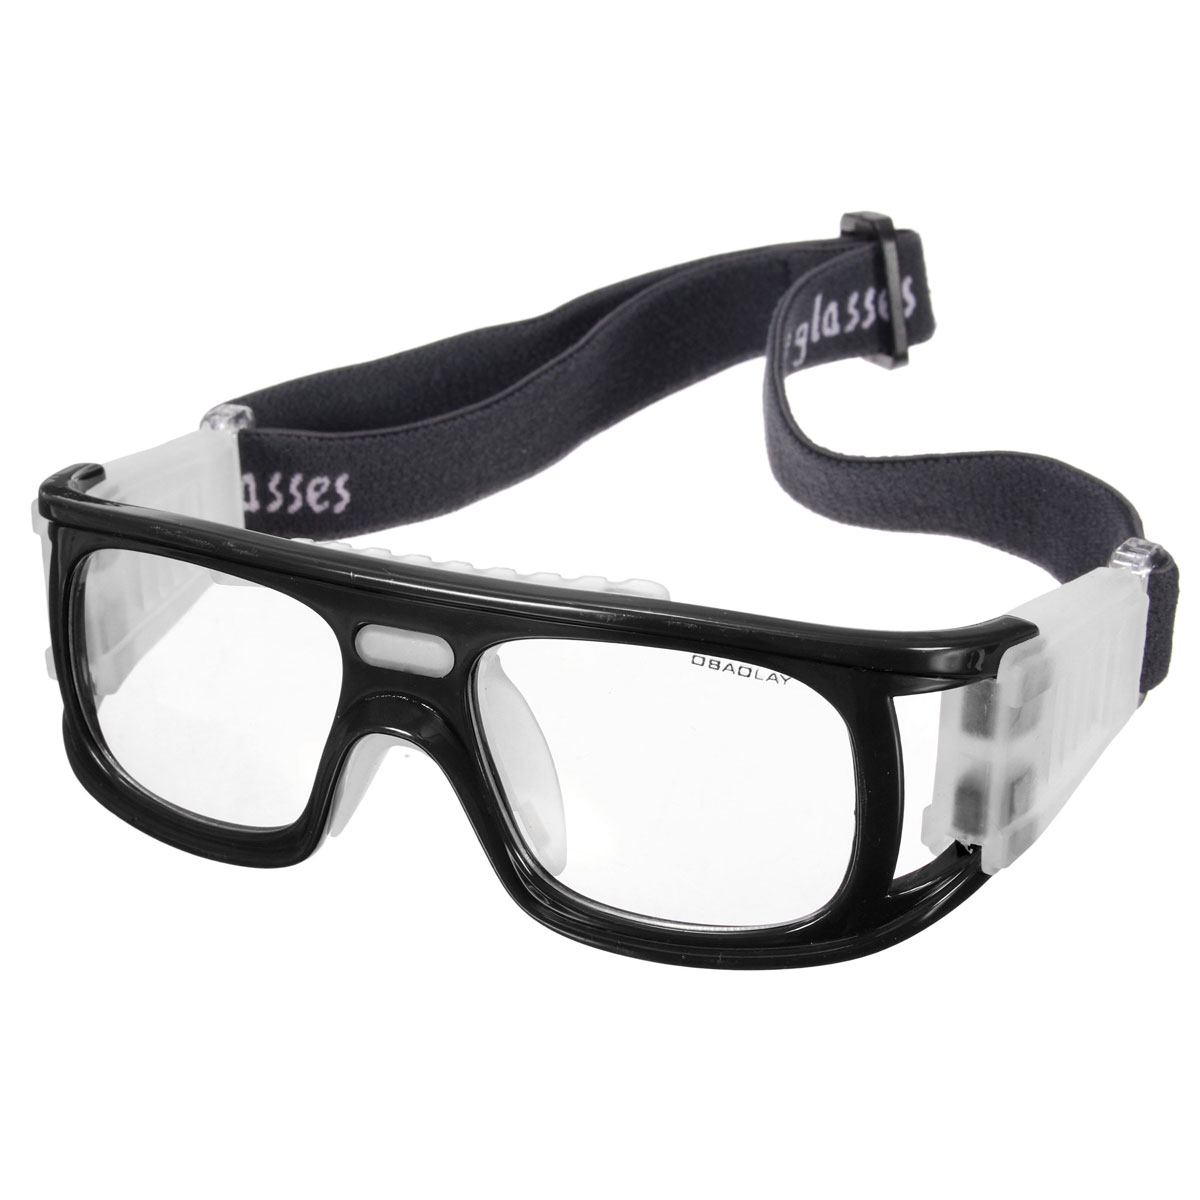 da15e270db1 Product details of Basketball Soccer Football Sports Protective Elastic  Goggles Eye Safety Glasses Black